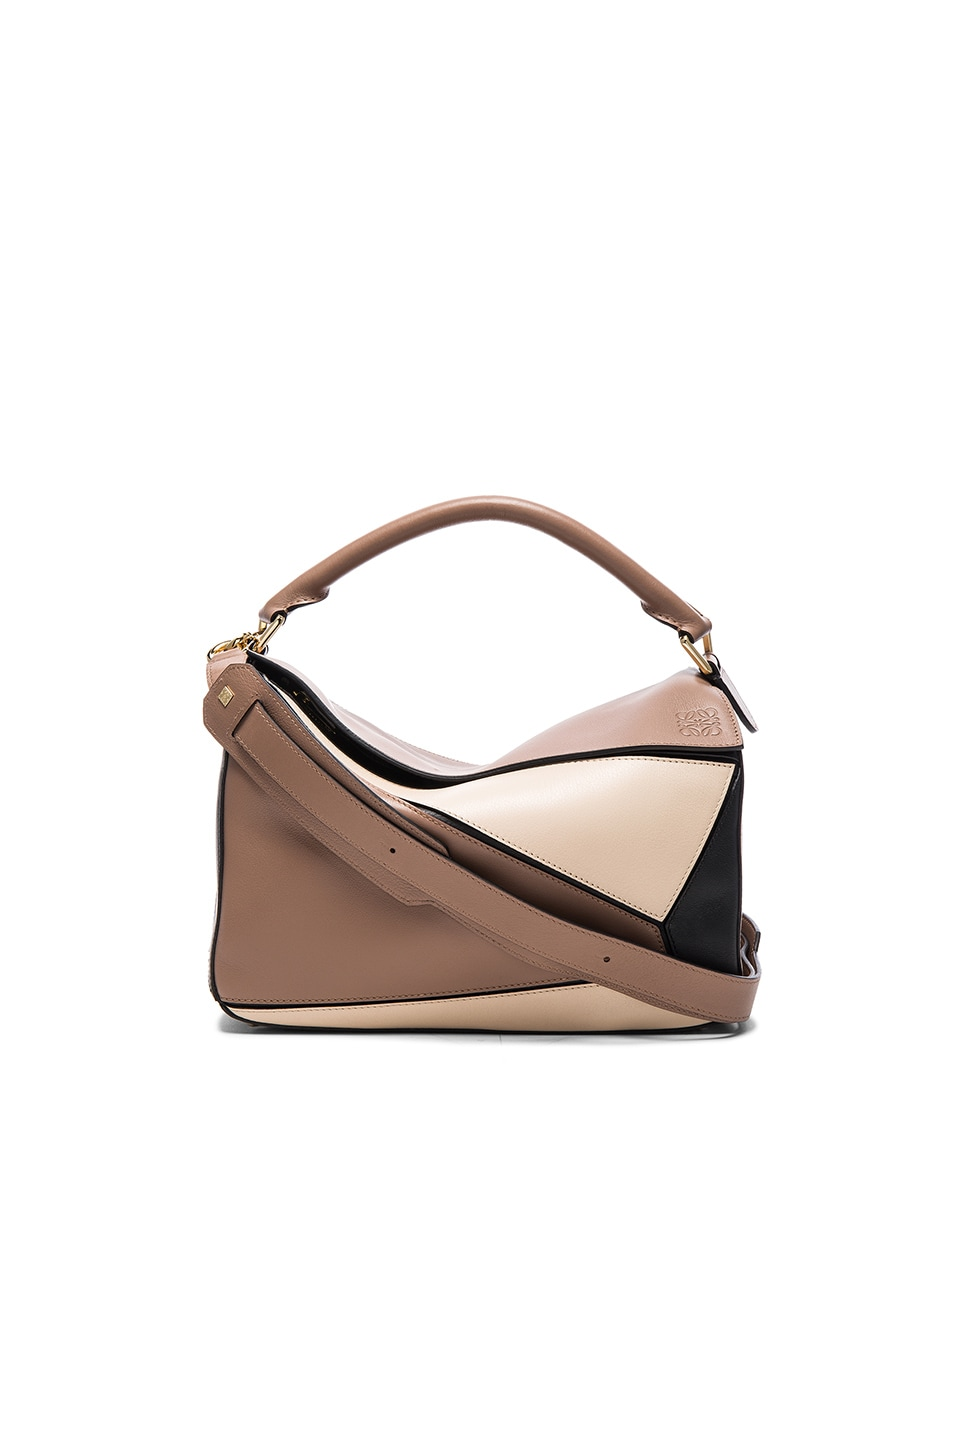 Image 1 of Loewe Puzzle Bag in Black & Hazelnut